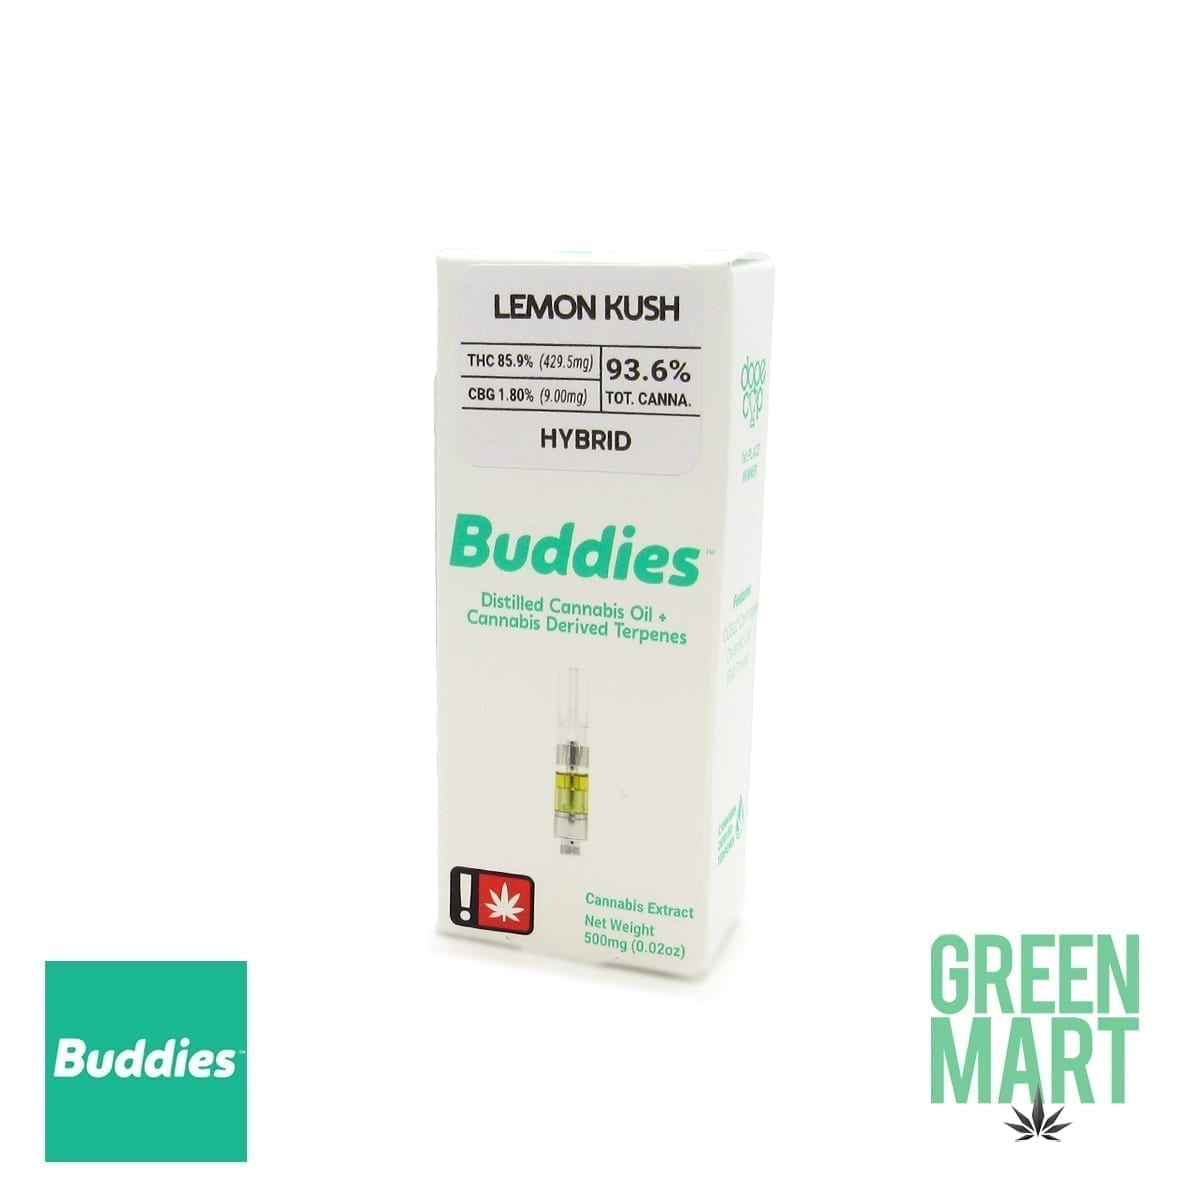 Buddies Brand Distillate Cartridge - Lemon Kush